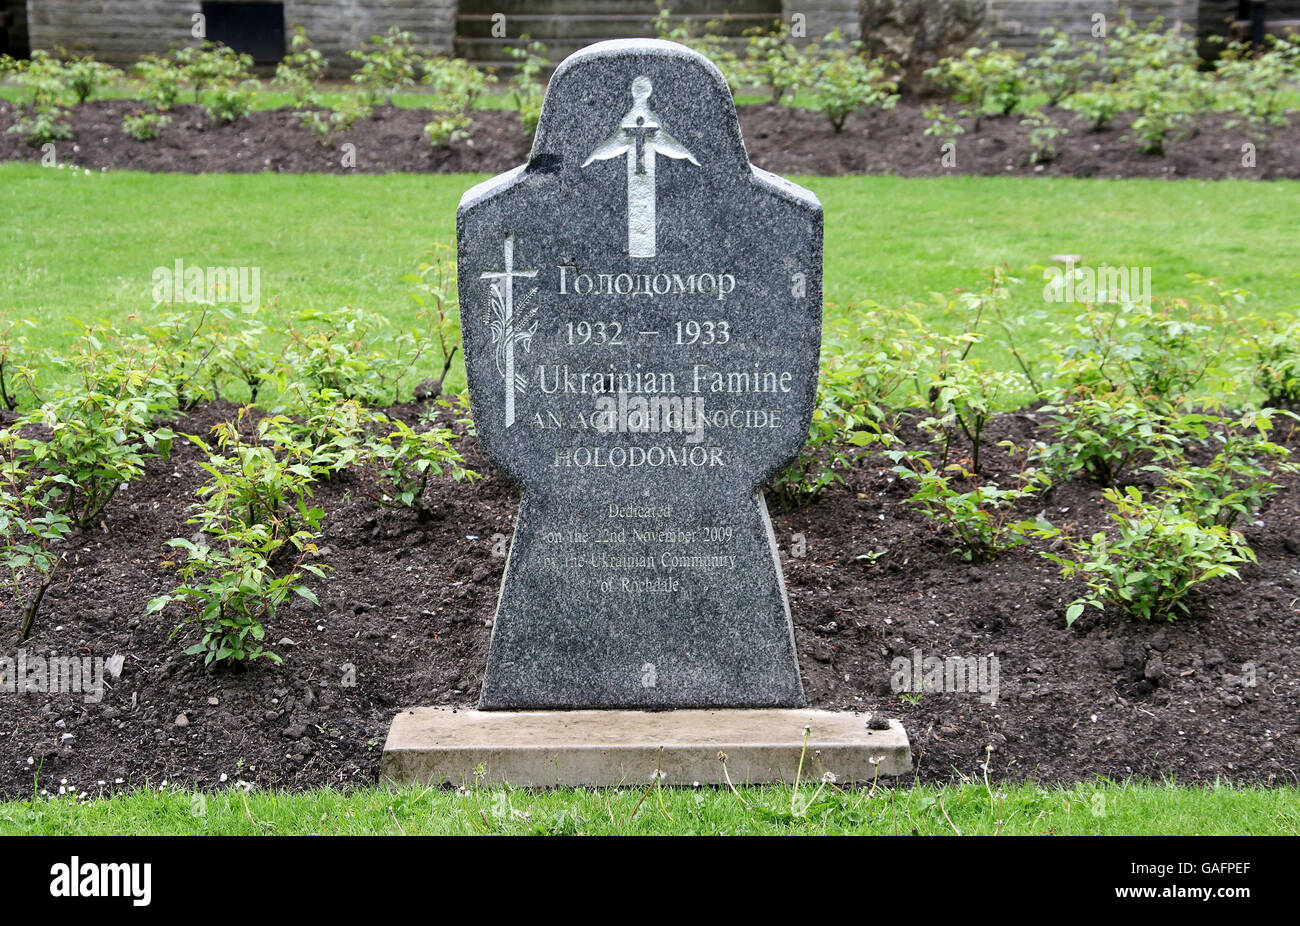 Ukranian Famine Memorial at Rochdale in Greater Manchester - Stock Image